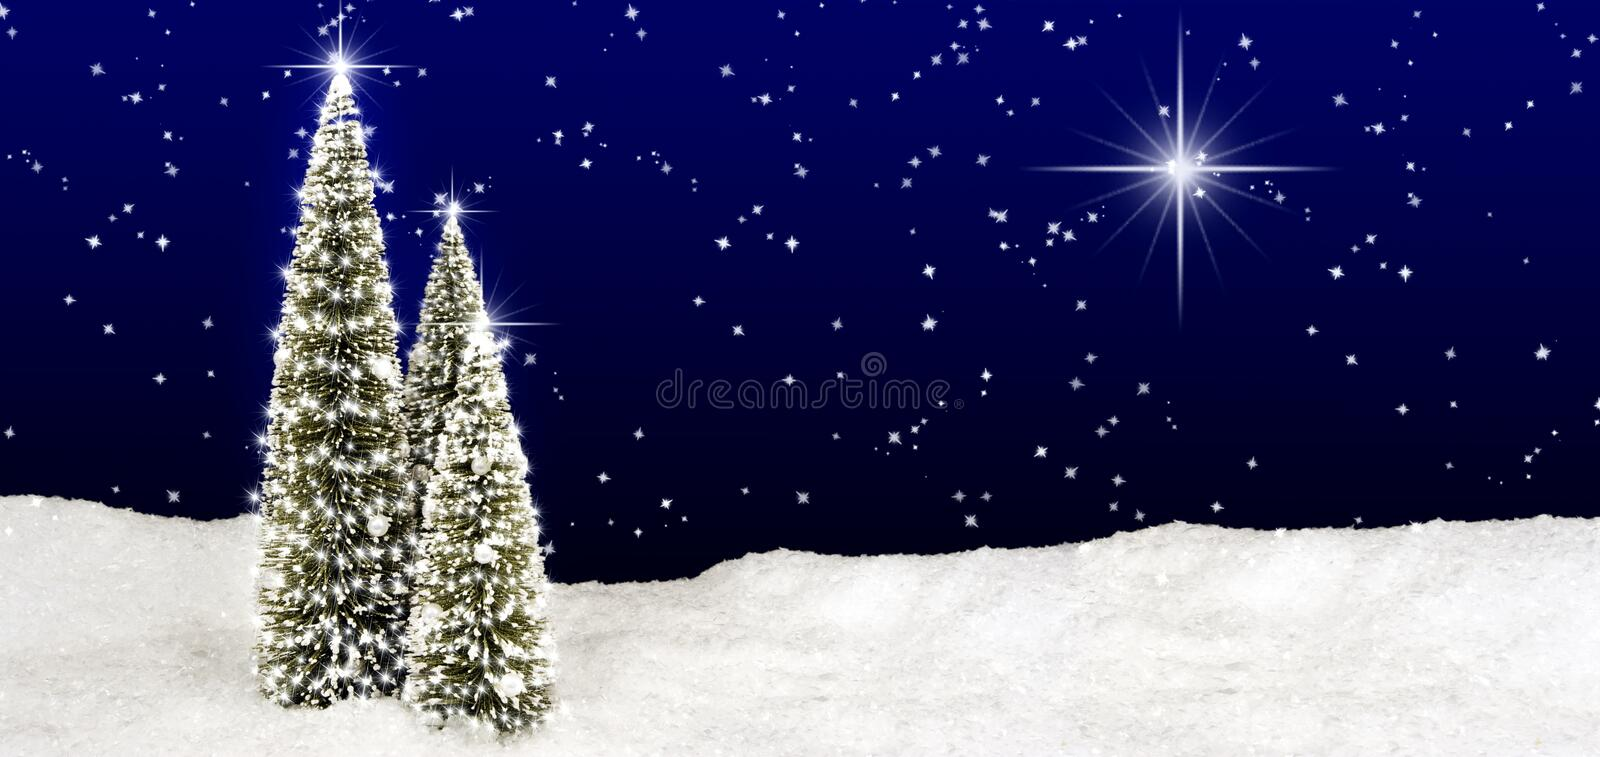 Christmas Trees Star Sky royalty free stock images